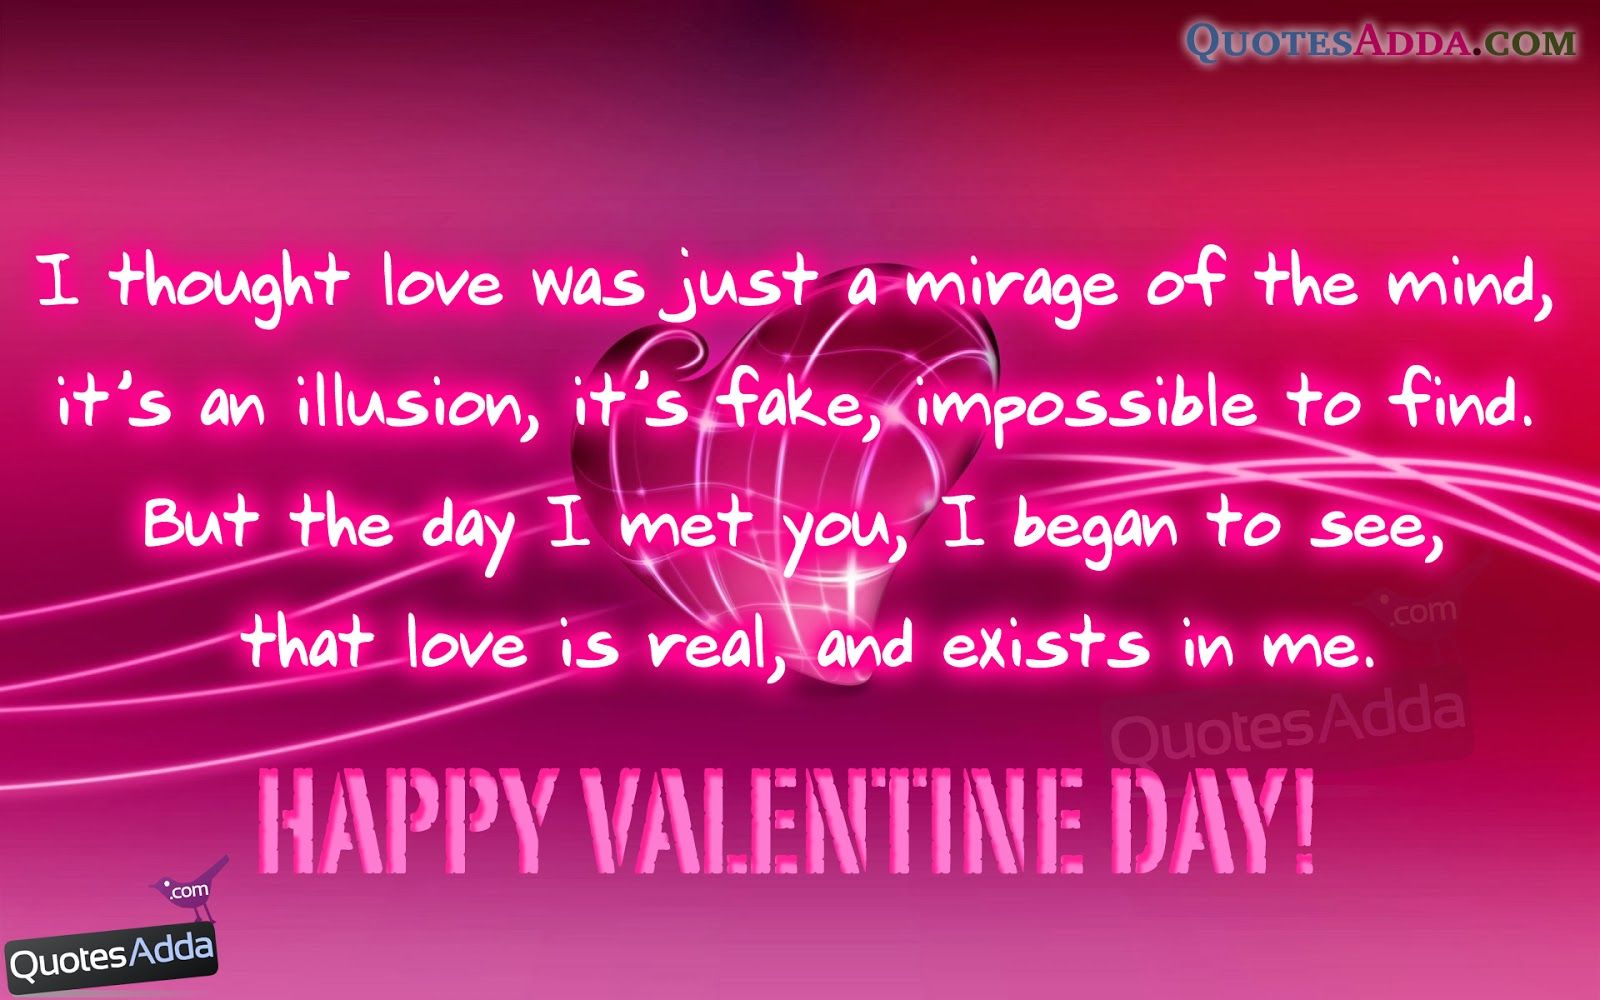 Valentines Quotes For Her Love Quotes For Her In Kannada Happy Valentines Day 2014 Quotes